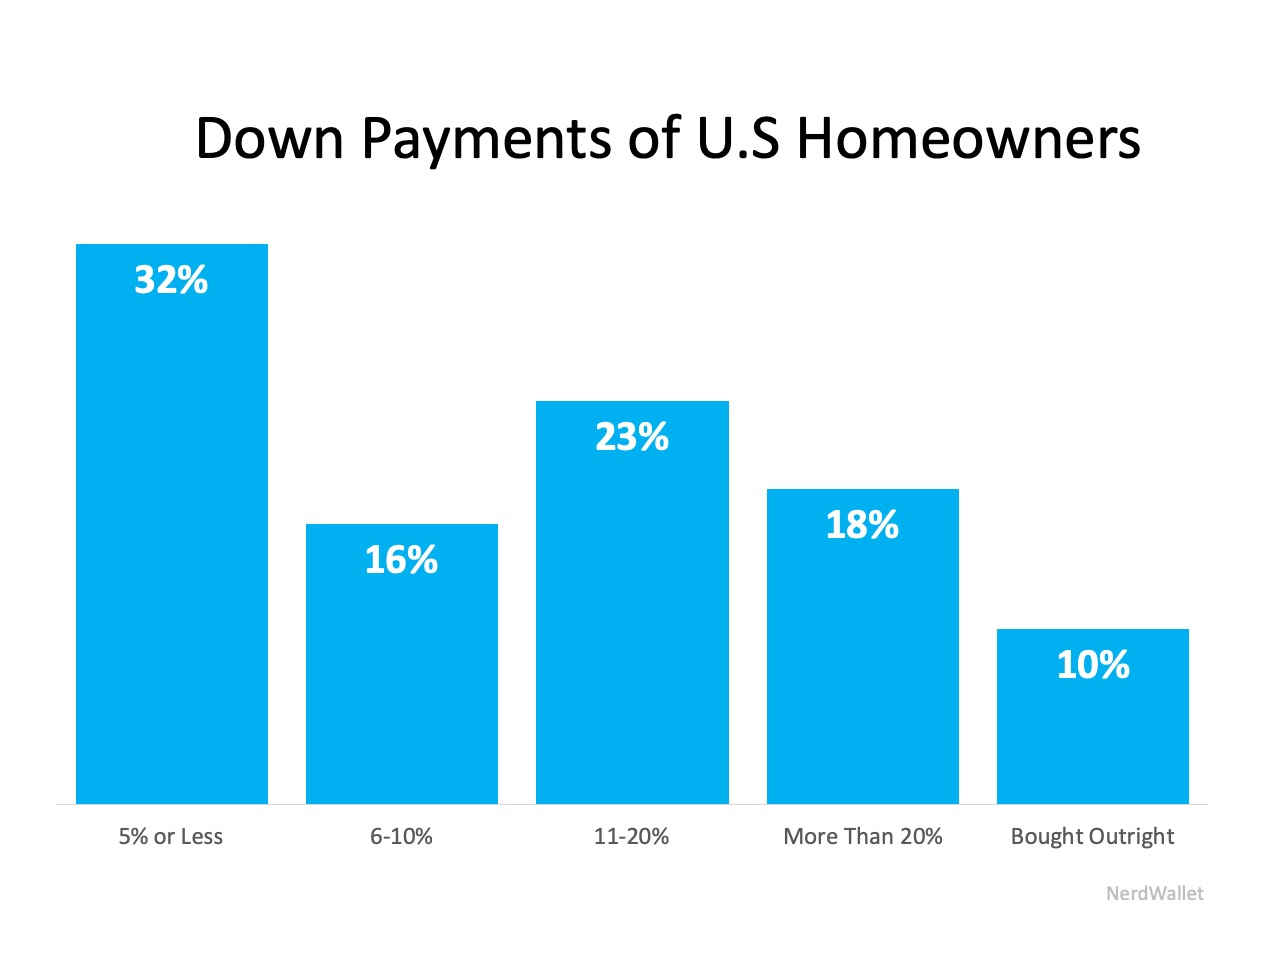 Downpayment history